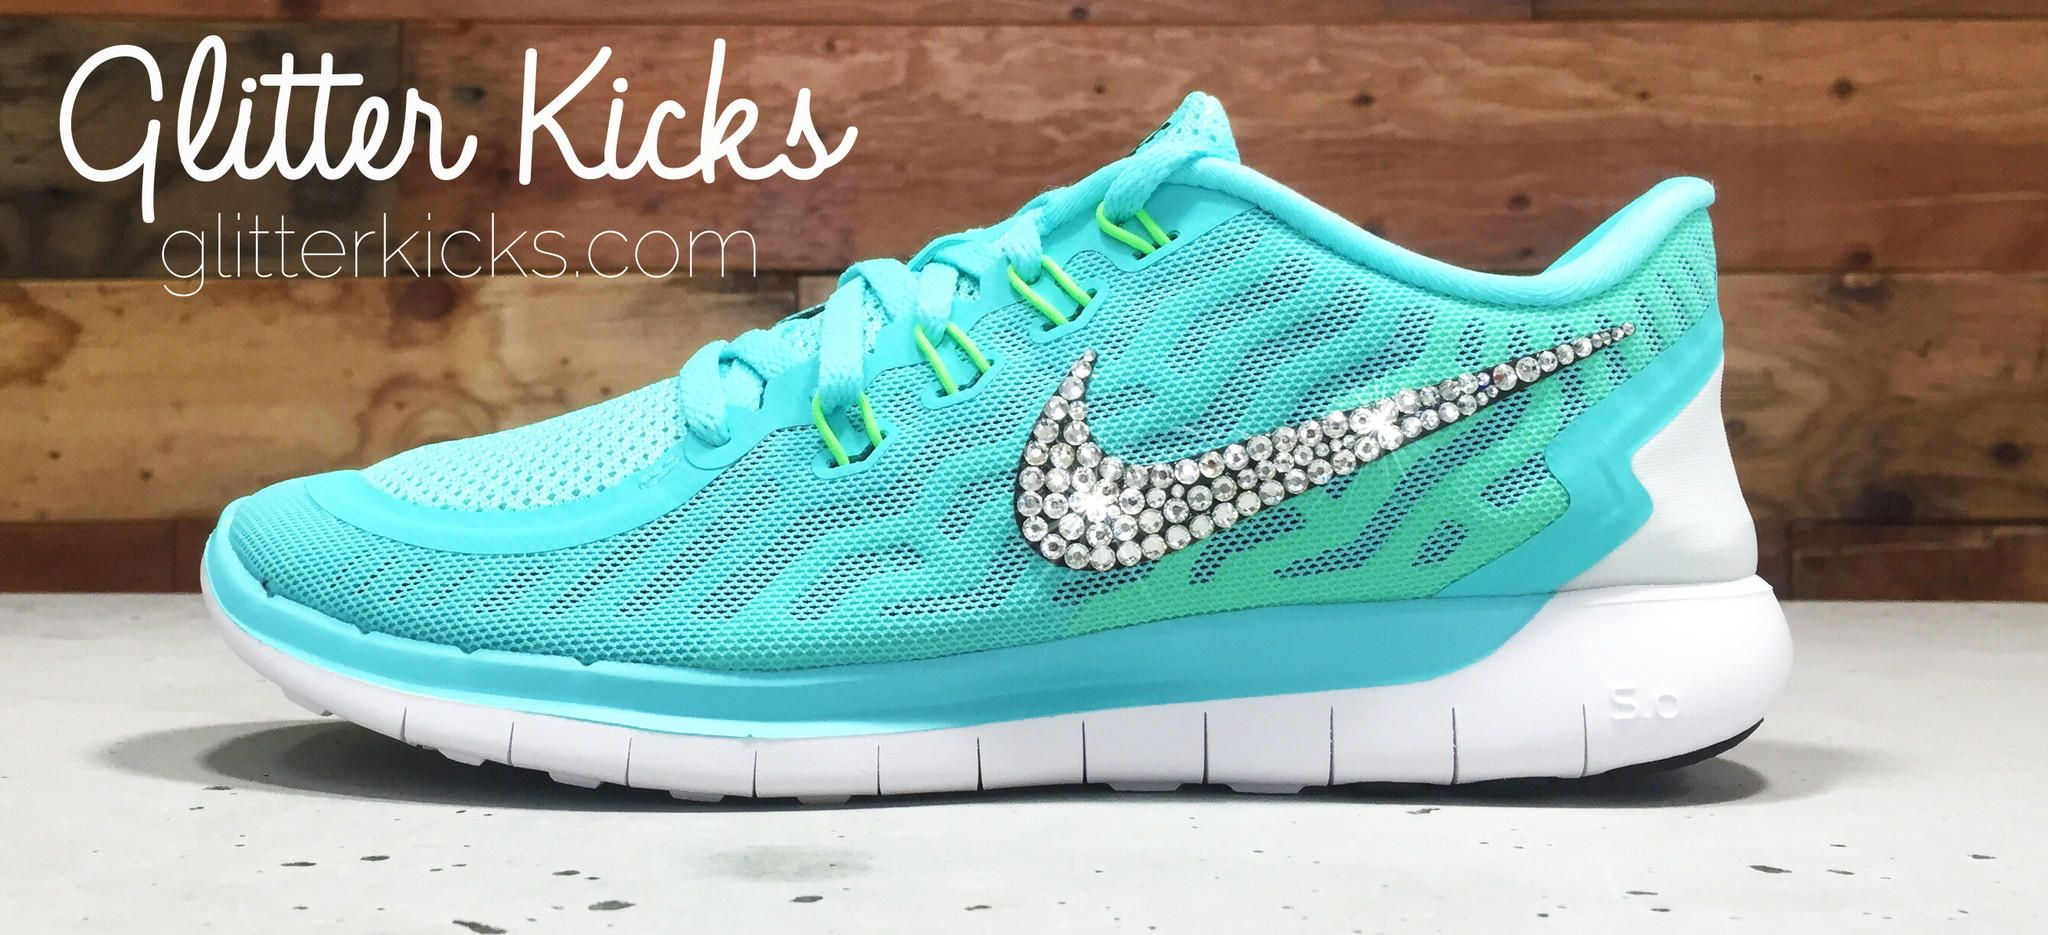 Women s Nike Free 5.0 Running Shoes By Glitter Kicks - Hand Customized With  Swarovski Crystal Rhinestones 54d1c960e652